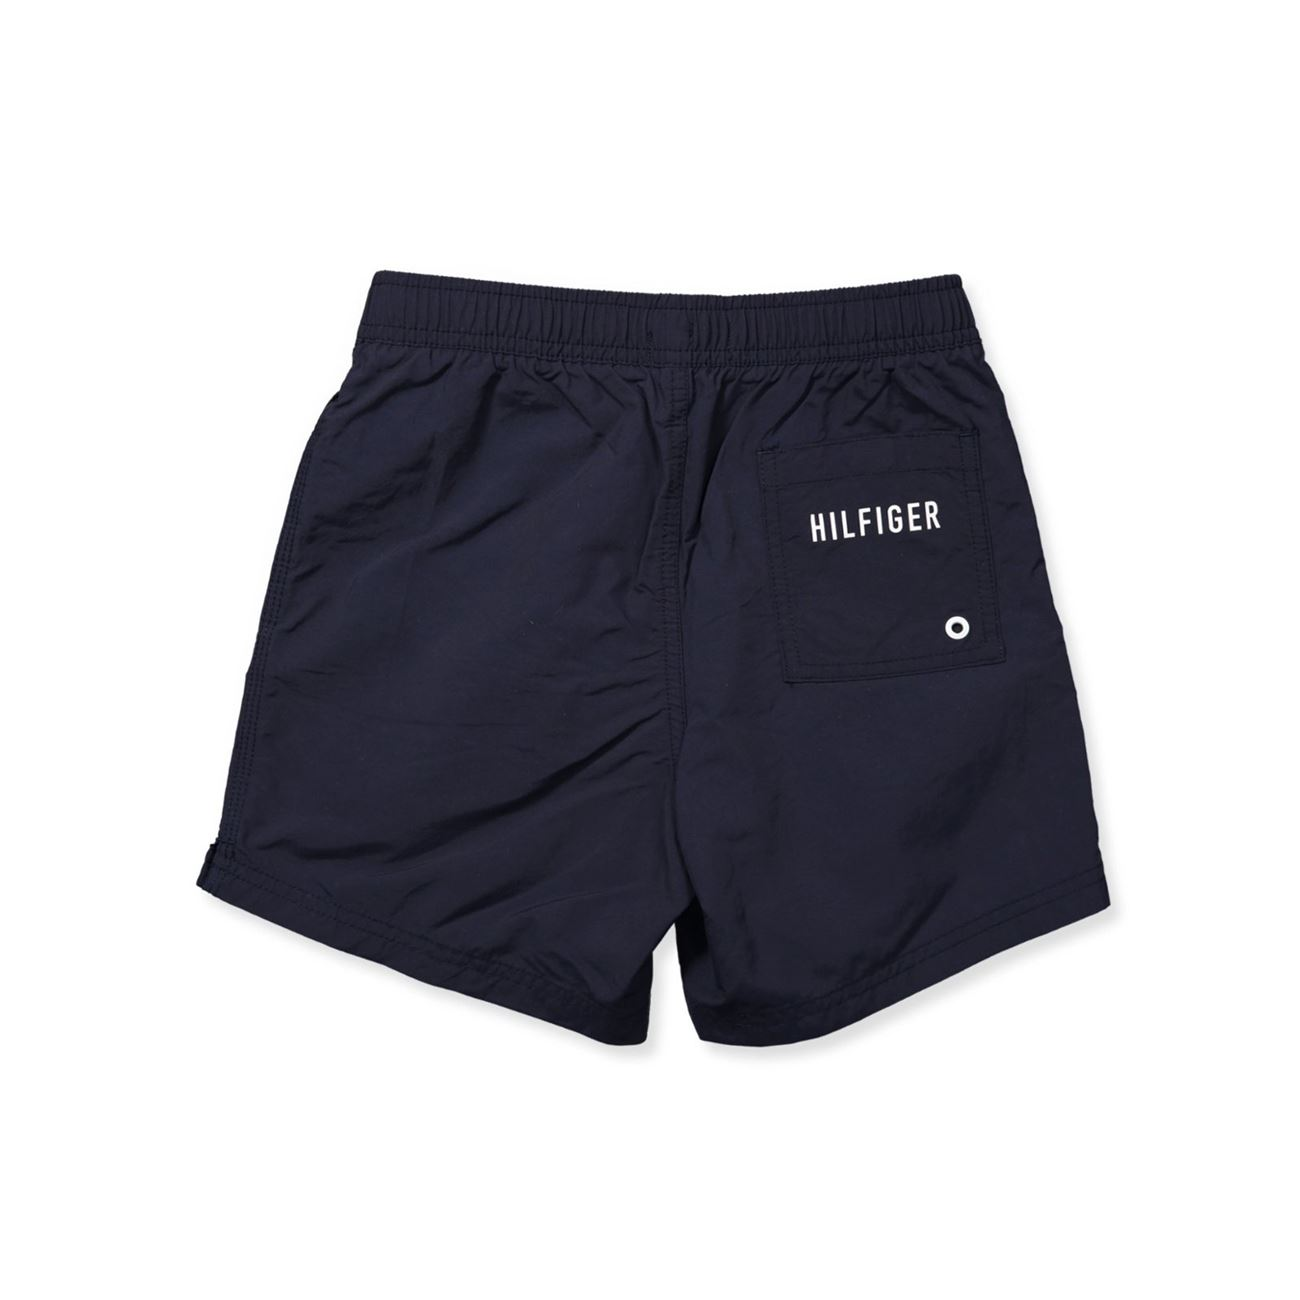 f65d9f205891 ... Tommy Hilfiger Παιδικό Μαγιό Βερμούδα Medium Drawstring. False. Click  photo for zoom